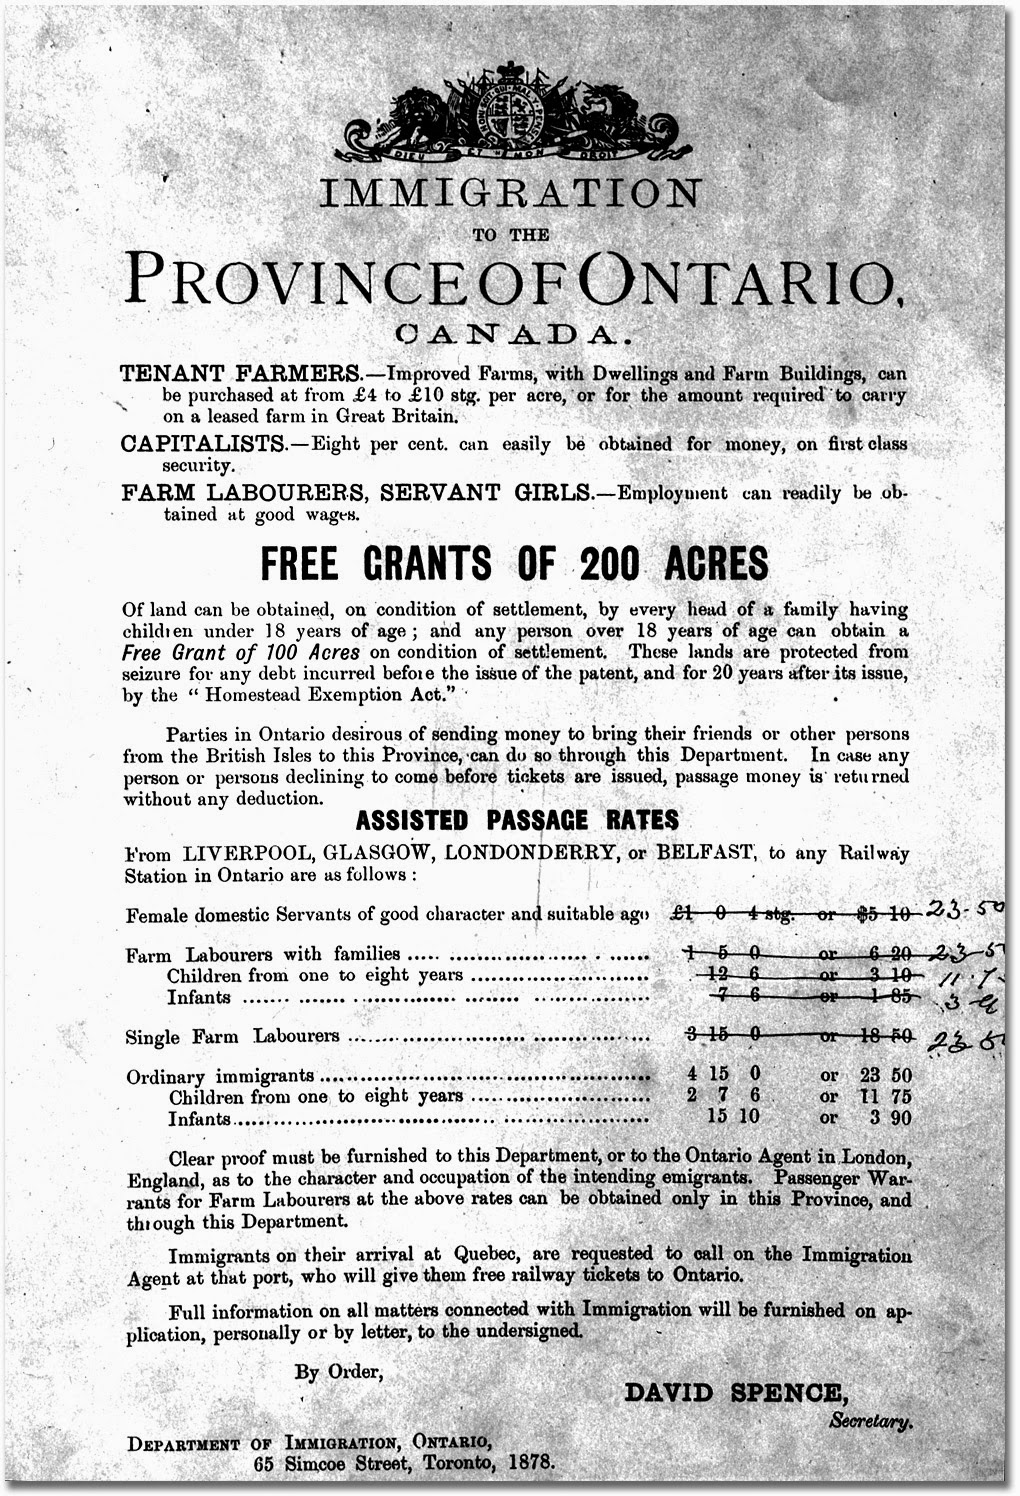 Climbing My Family Tree: Ontario Immigration Poster from late 1800's